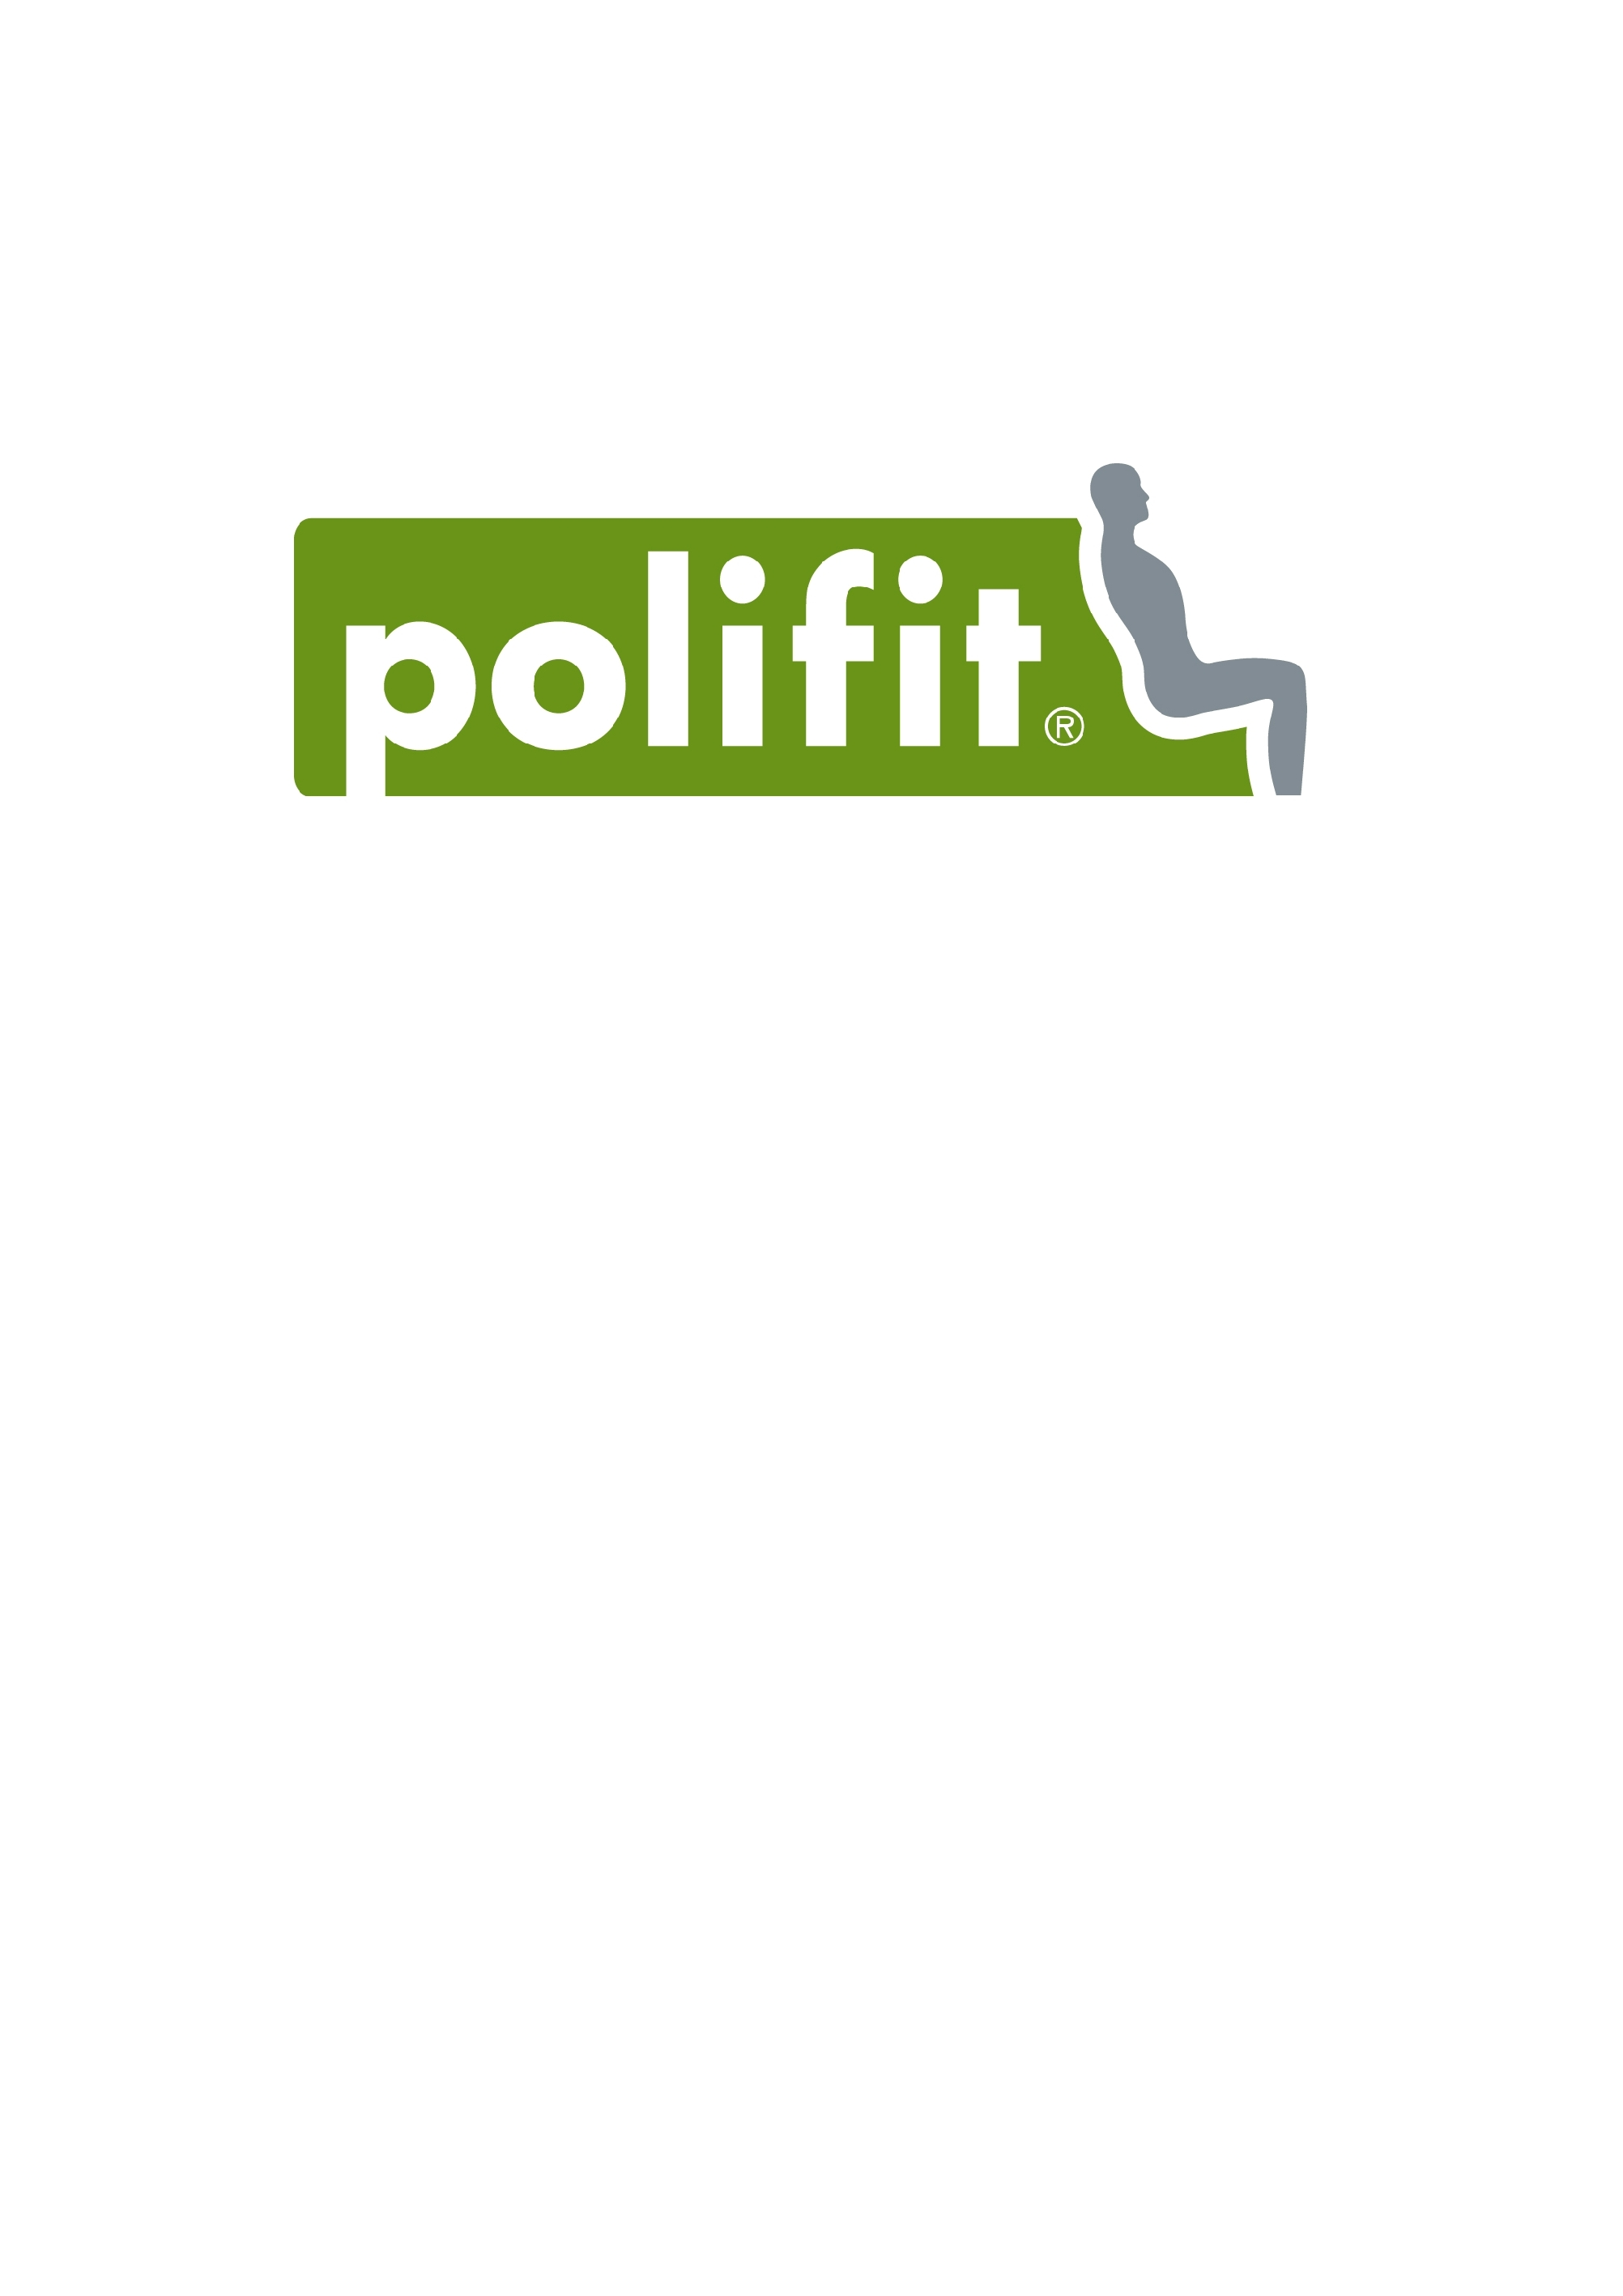 polifit - Reviews & Brand Information - POLIPOL polstermöbel gmbh ...